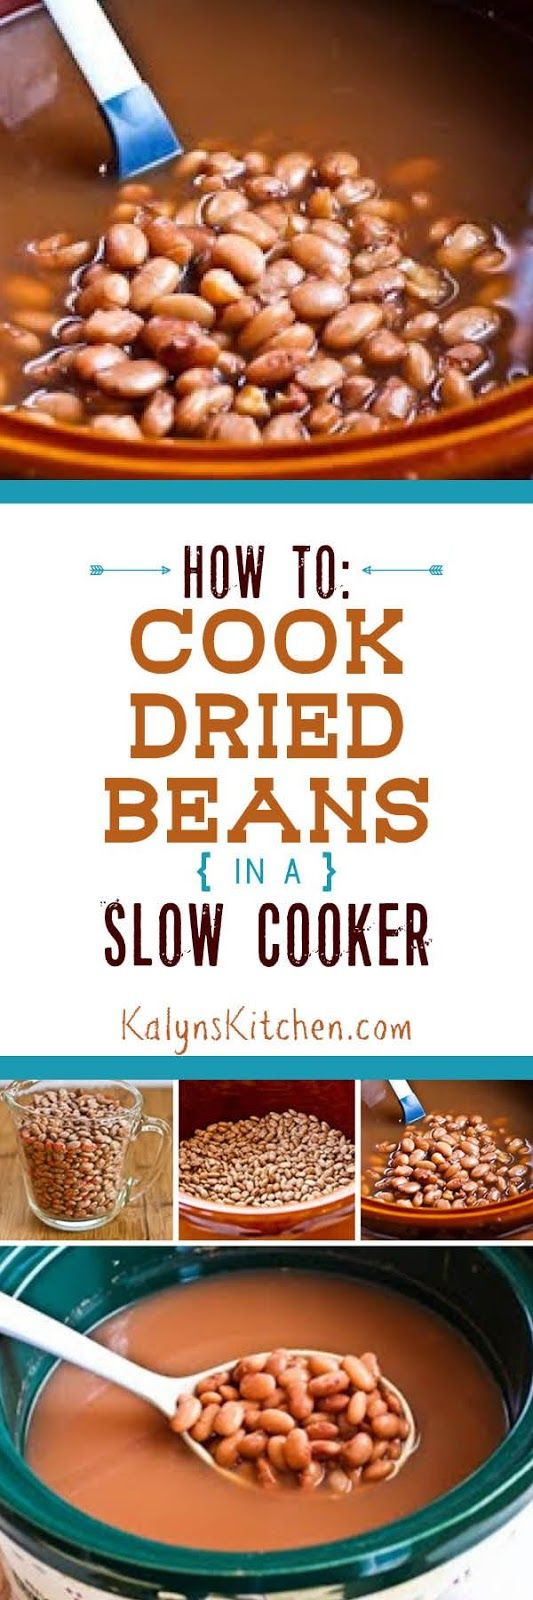 This popular post on How to Cook Dried Beans in a Crockpot Slow Cooker compares results using soaked or unsoaked beans and has other tips for slow cooker beans. And dried beans cooked in a slow cooker are better tasting, more nutritous, and less expensive than canned beans, so everyone should be doing this!  [found on KalynsKitchen.com]